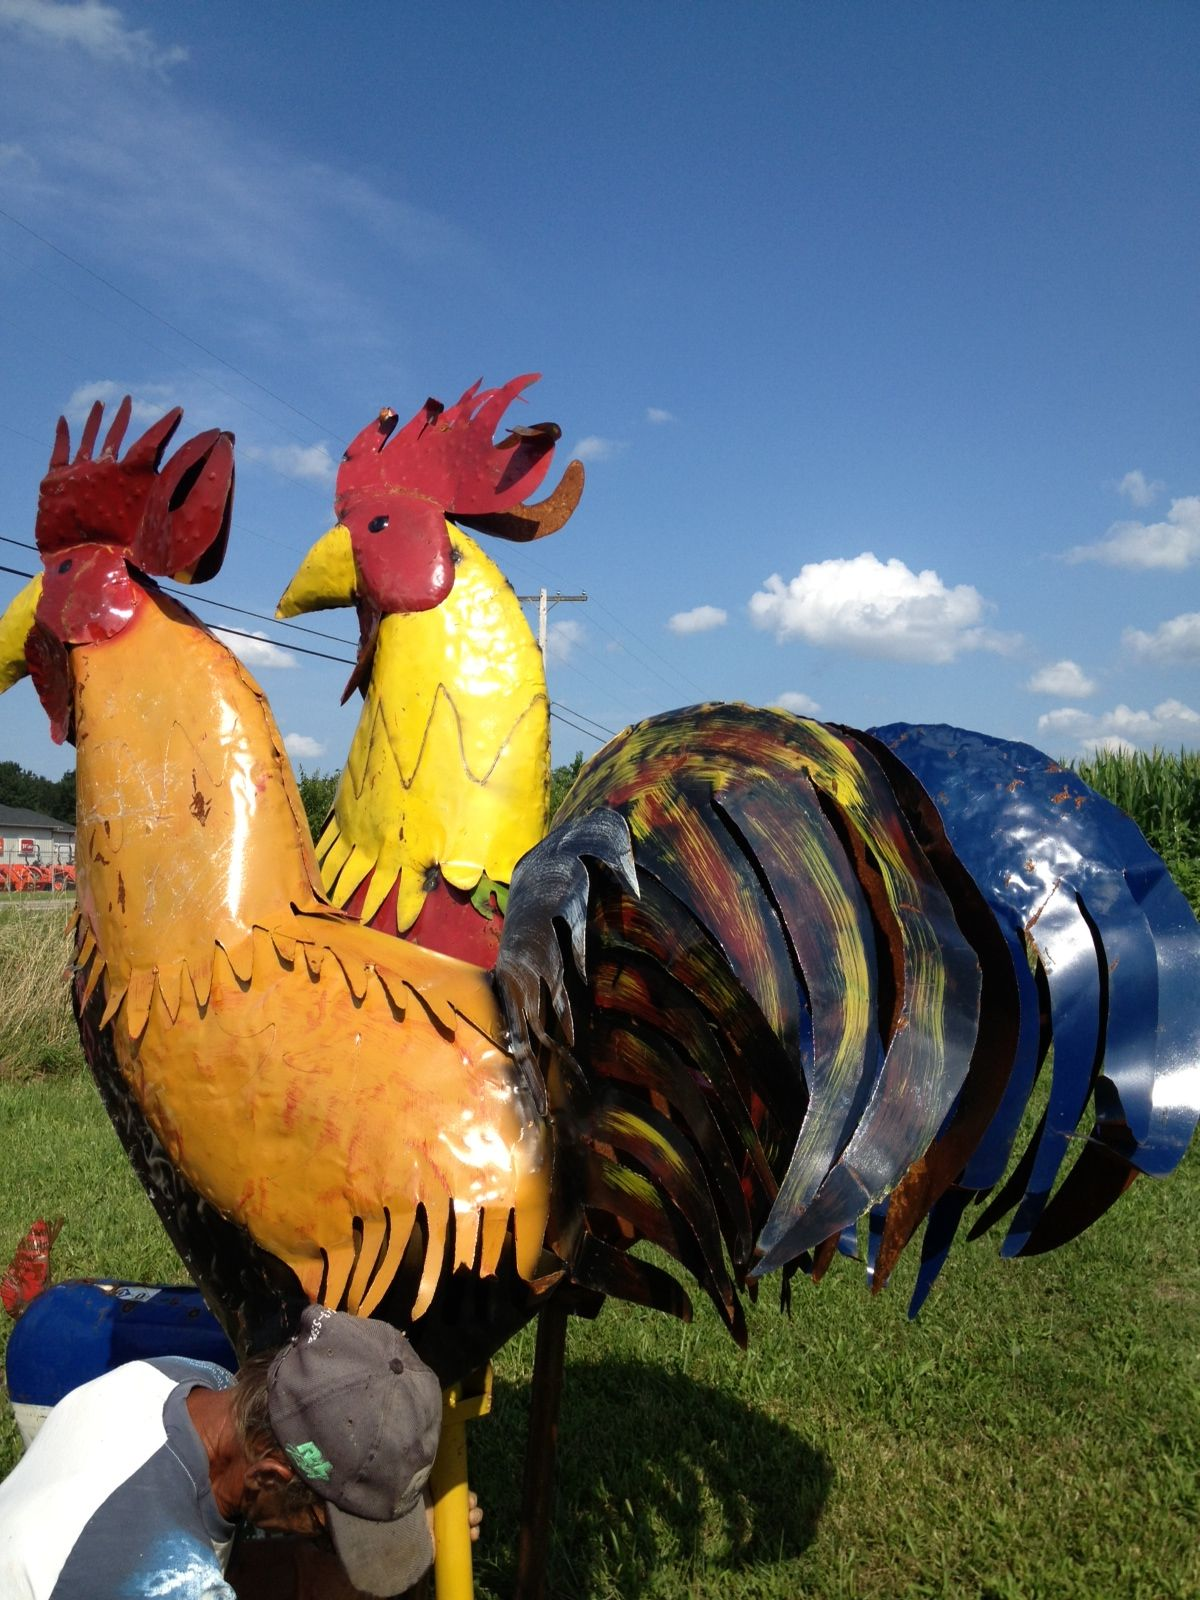 77 Big Colorful Metal Rooster Large Yard Art Chicken Sculpture